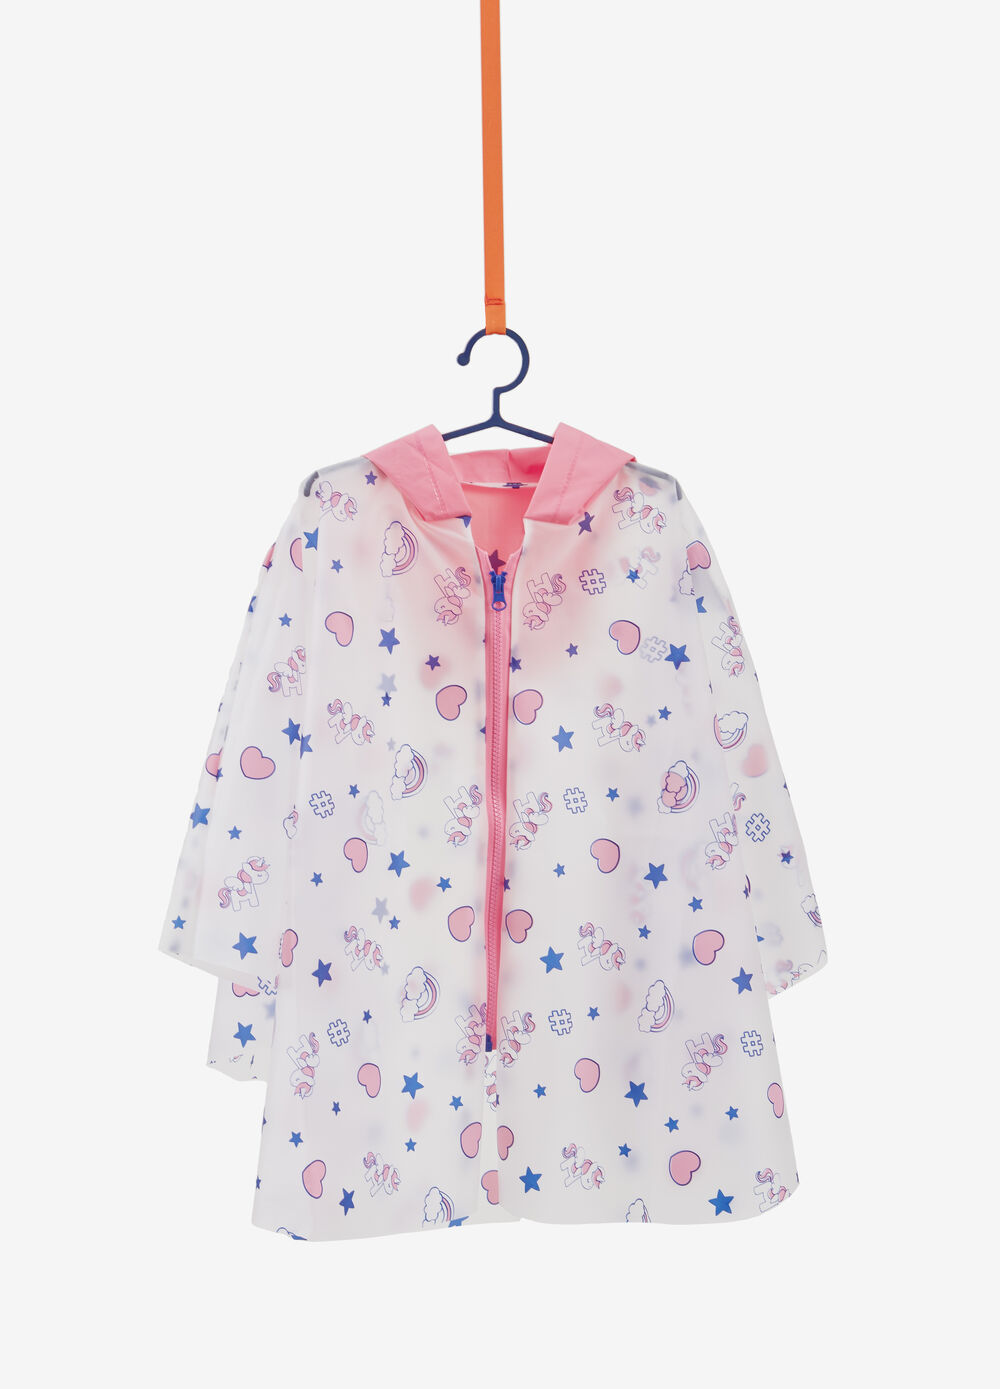 Rain poncho with hearts and unicorns